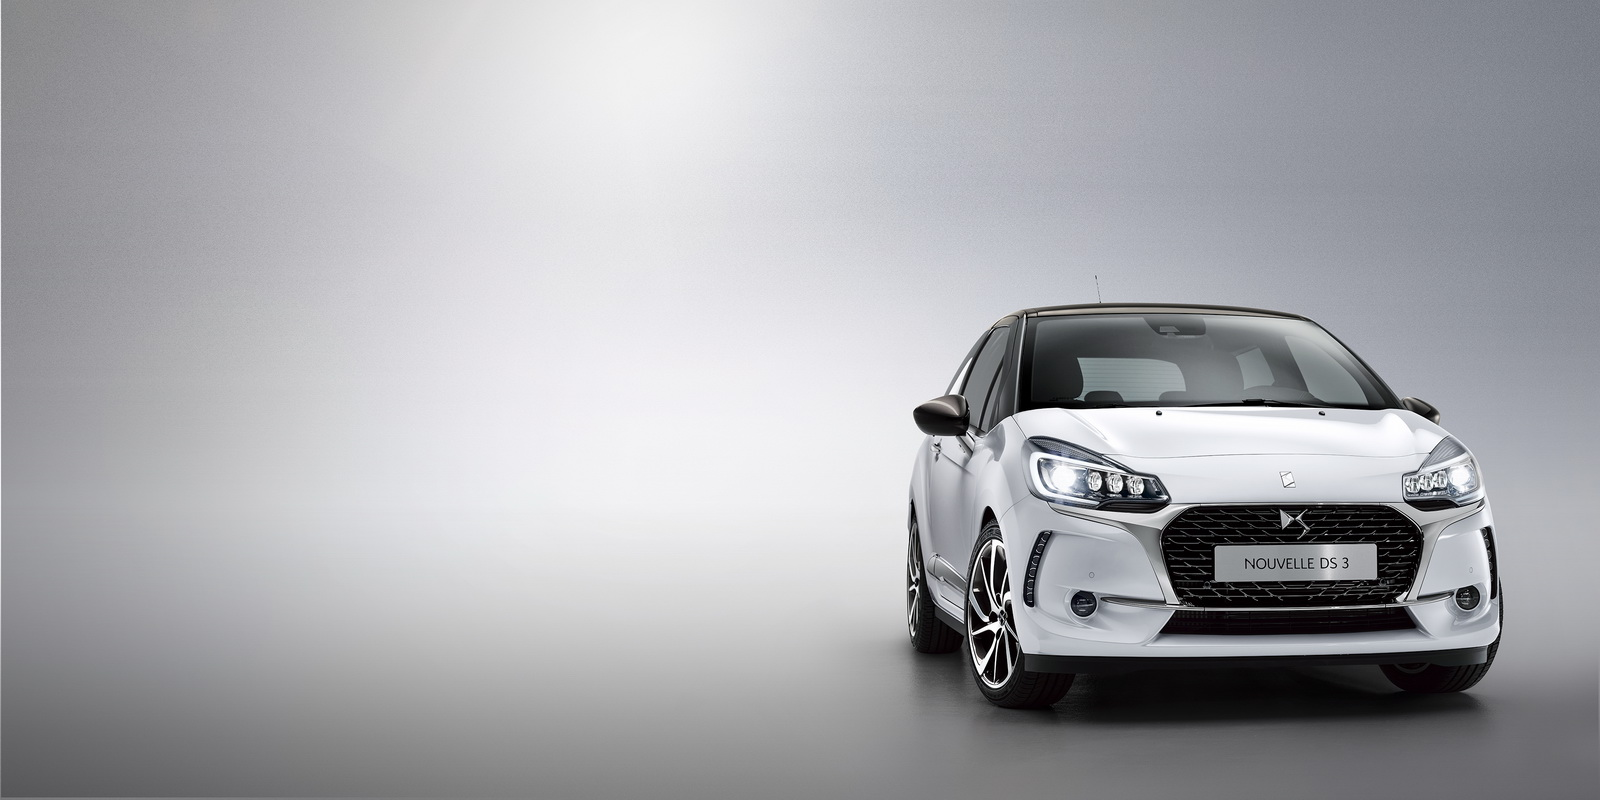 La DS 3 modernisée, adieu les chevrons ! - Photo n°1